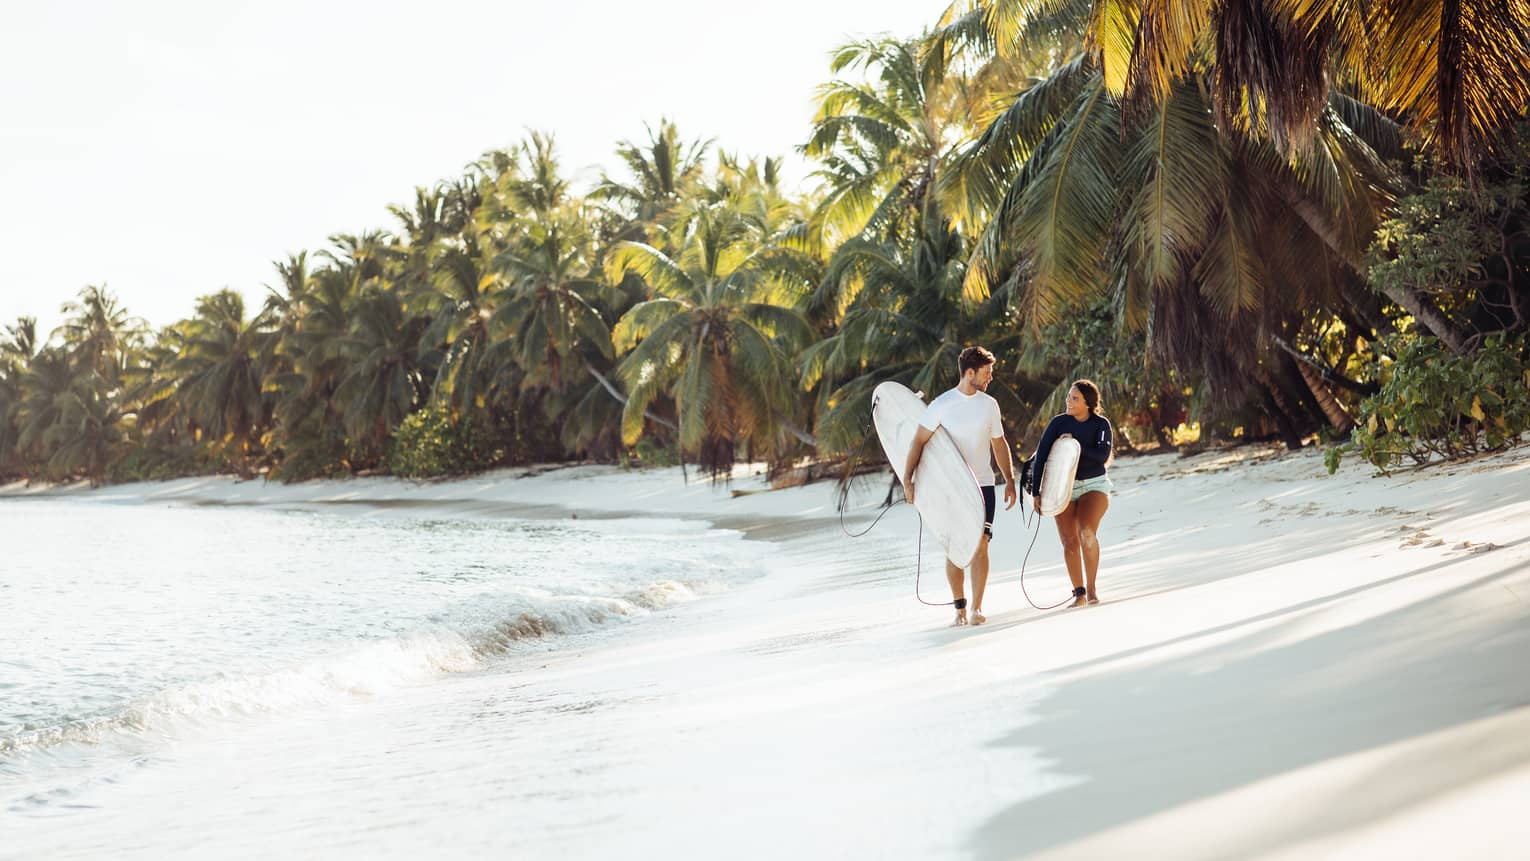 Couple walking on the beach carrying surfboard